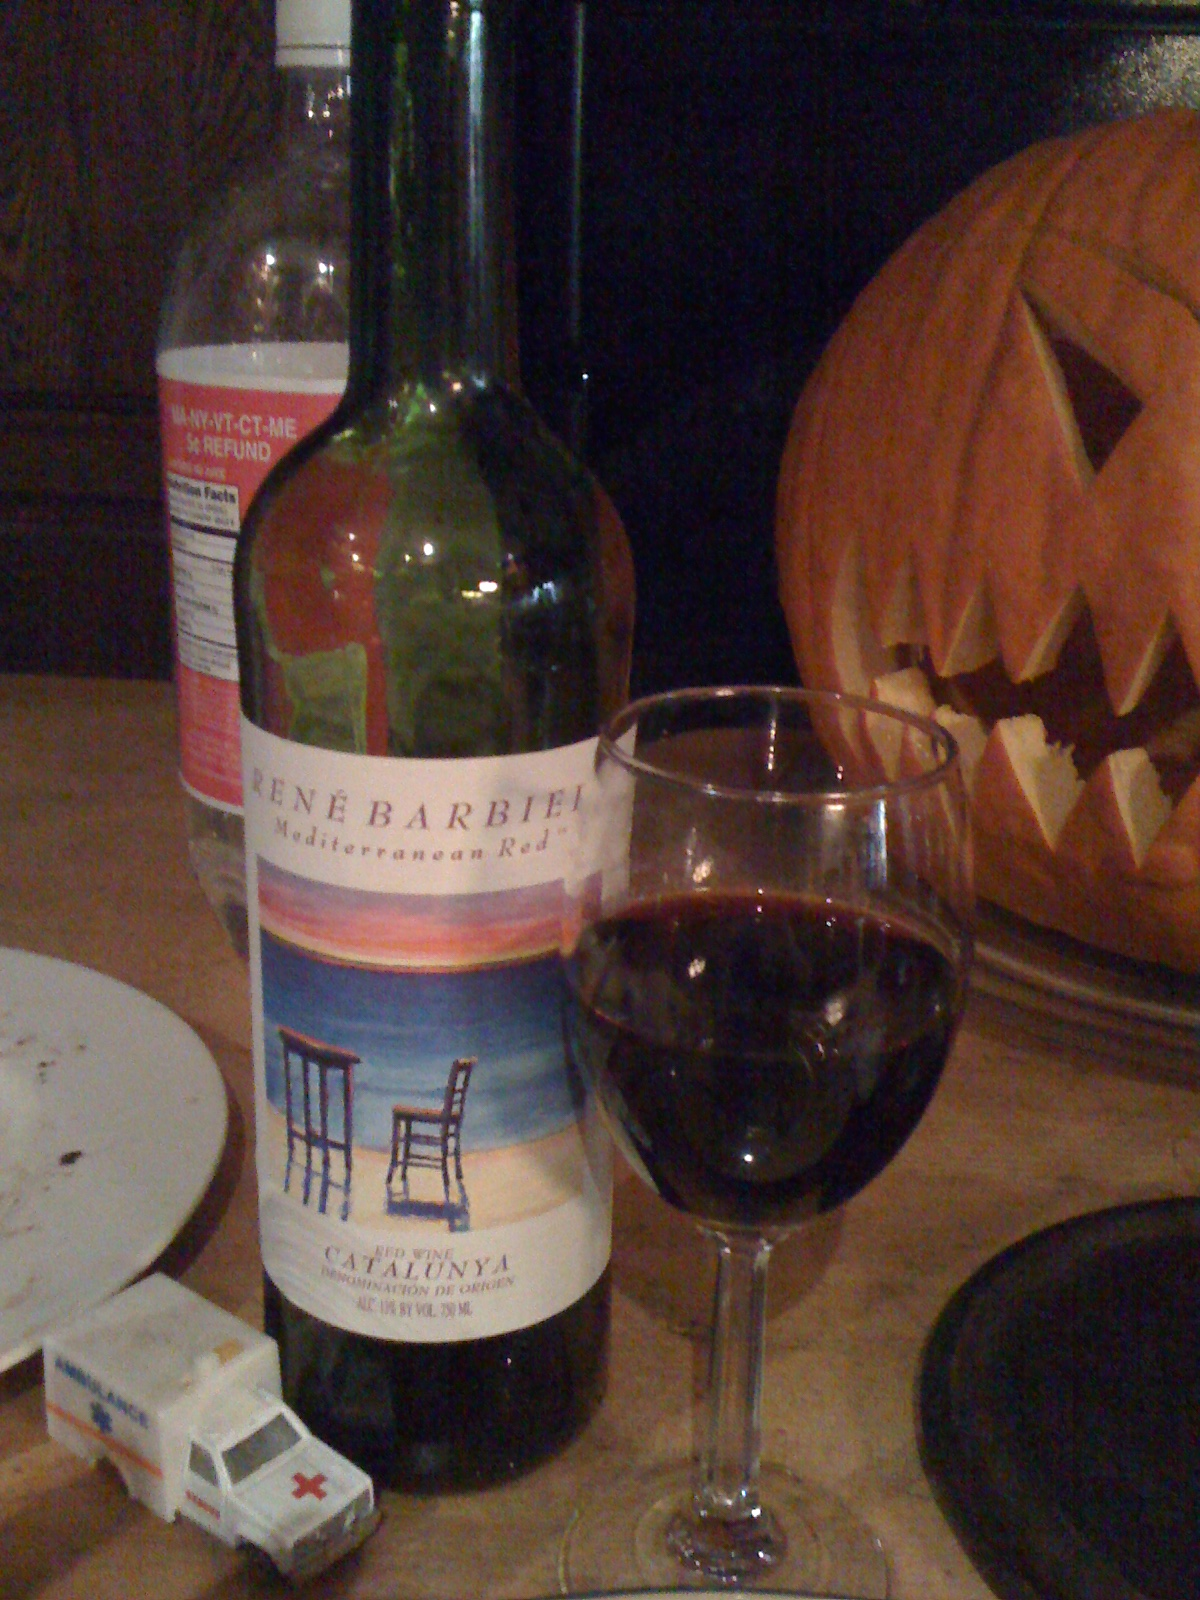 home :: Rene Barbiei, Mediterranean Red table wine. I thought this deserved it's own consideration. A  mix of Merlot and Tempranillo, alone it has a bit of a zip on your tongue, not very fantastic. But as a dinner wine, particularly with a steak, it was excellent. And at $4 a bottle you can't go wrong for table-plunk.